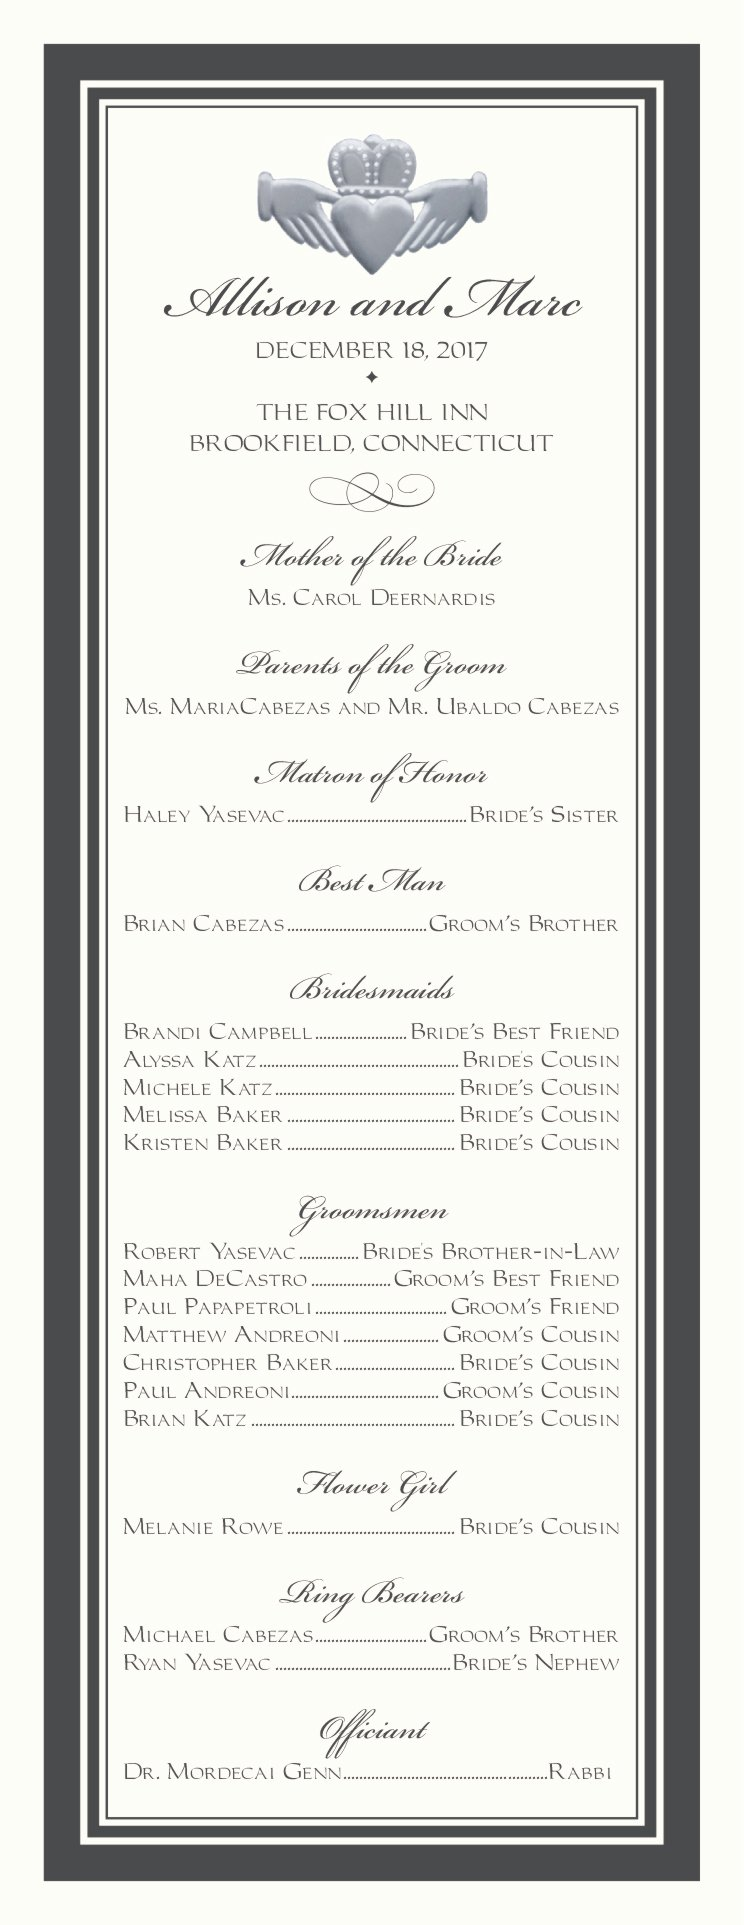 Samples Of Wedding Programs Best Of Wedding Programs Wedding Program Wording Program Samples Program Examples Wedding Program Templates